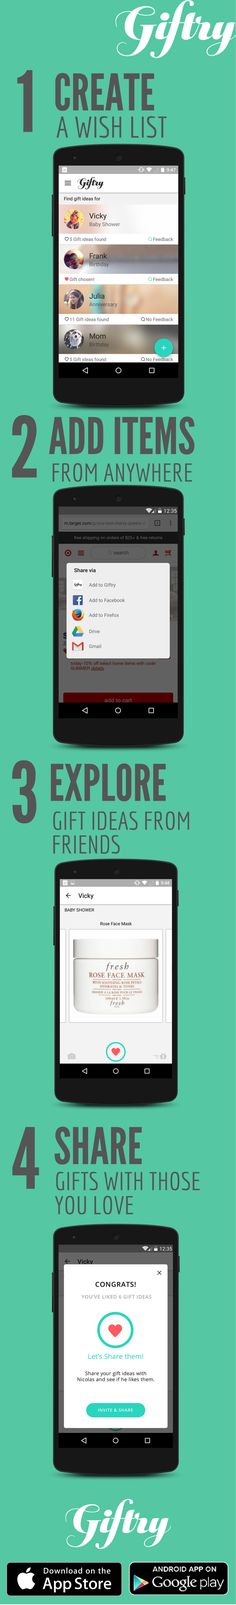 How to never give (or receive) a bad gift again in 4 easy steps using the free Giftry app!